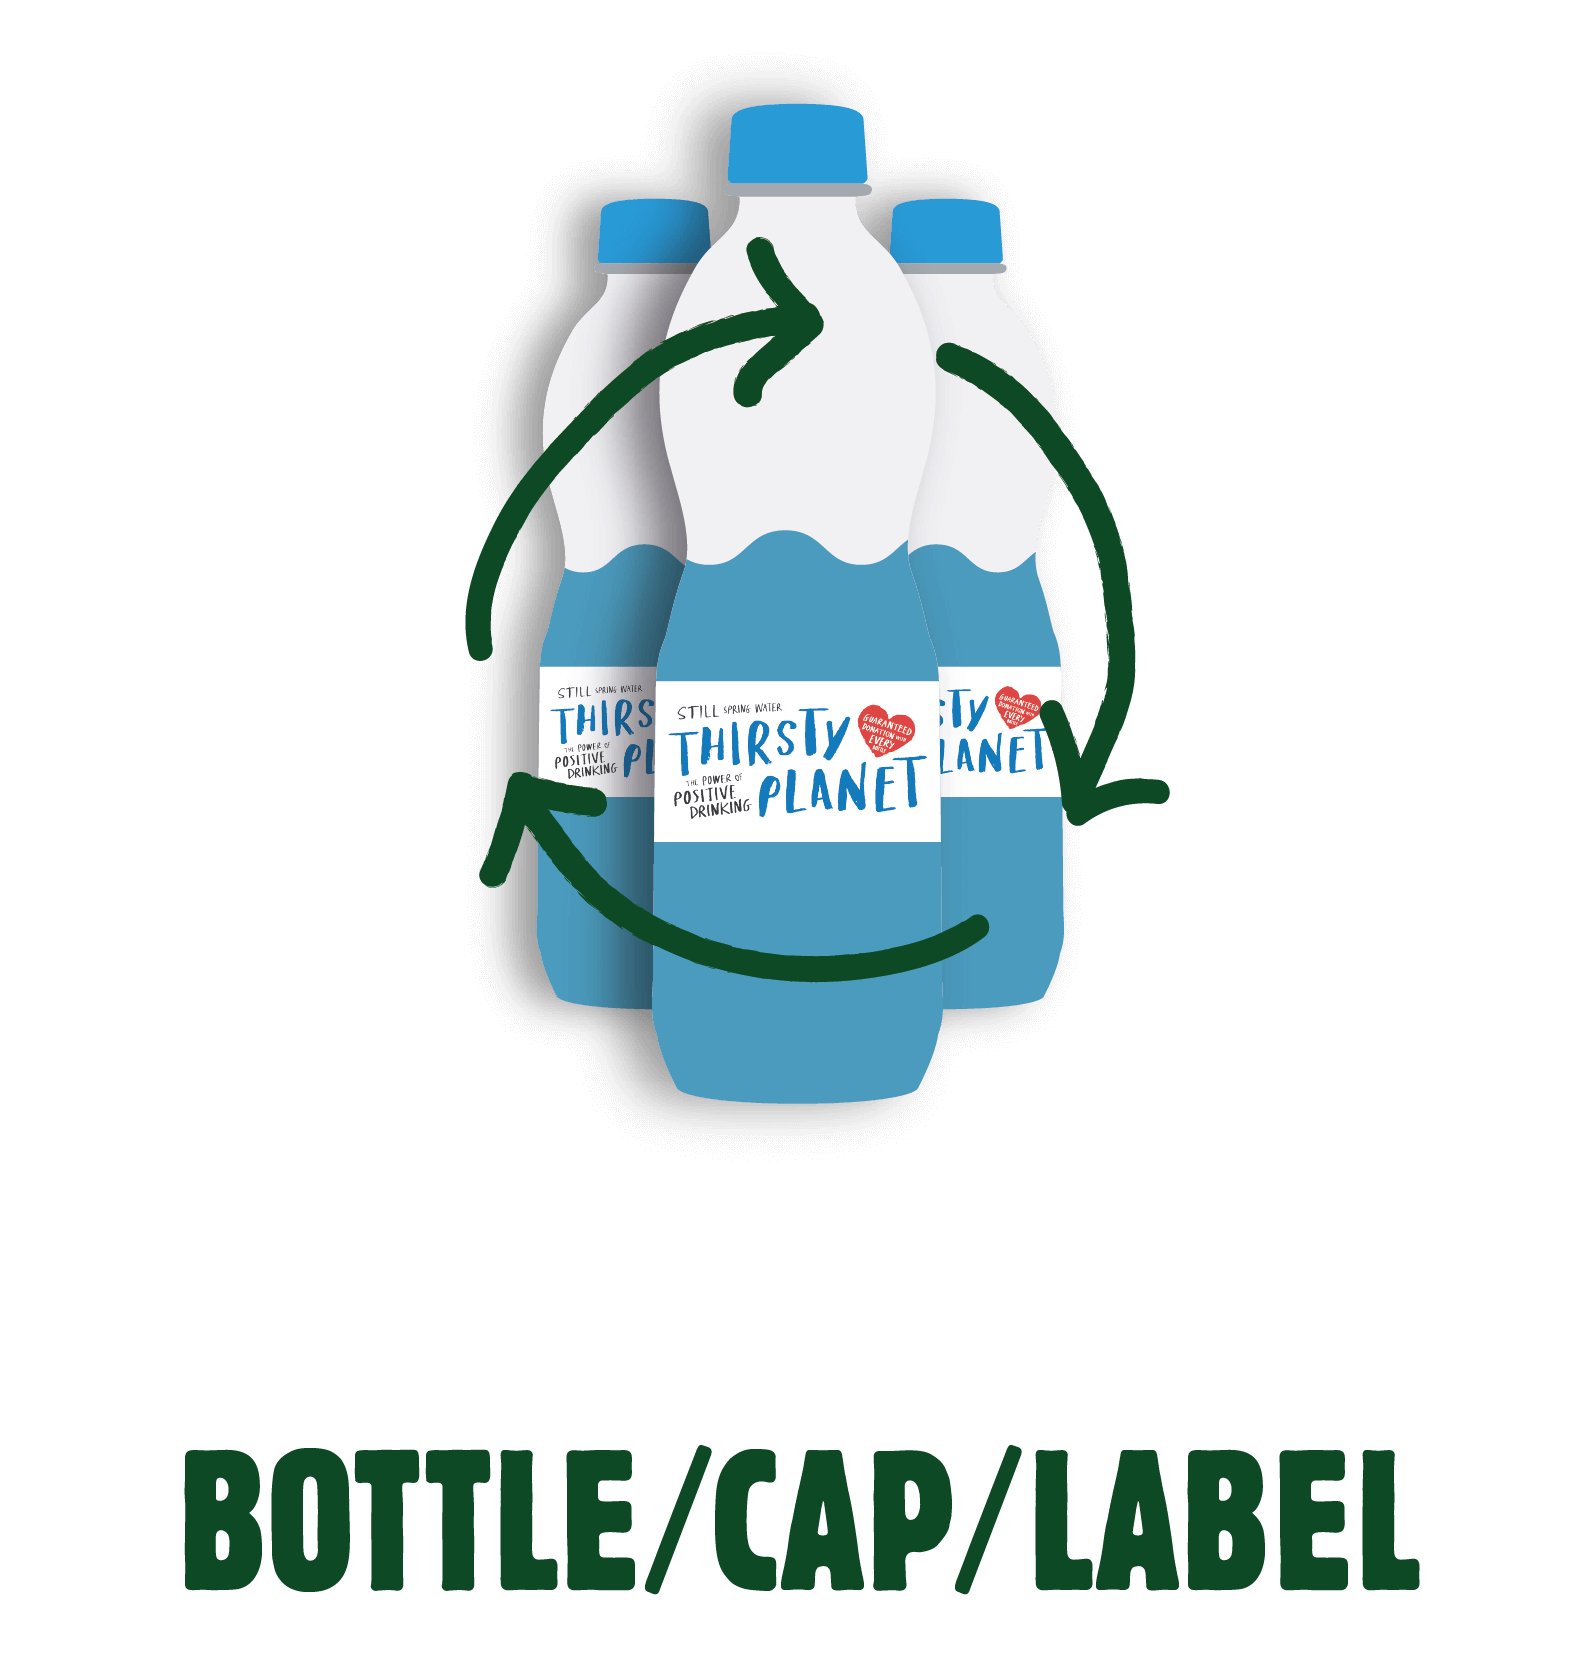 100% recyclable bottle/cap/label